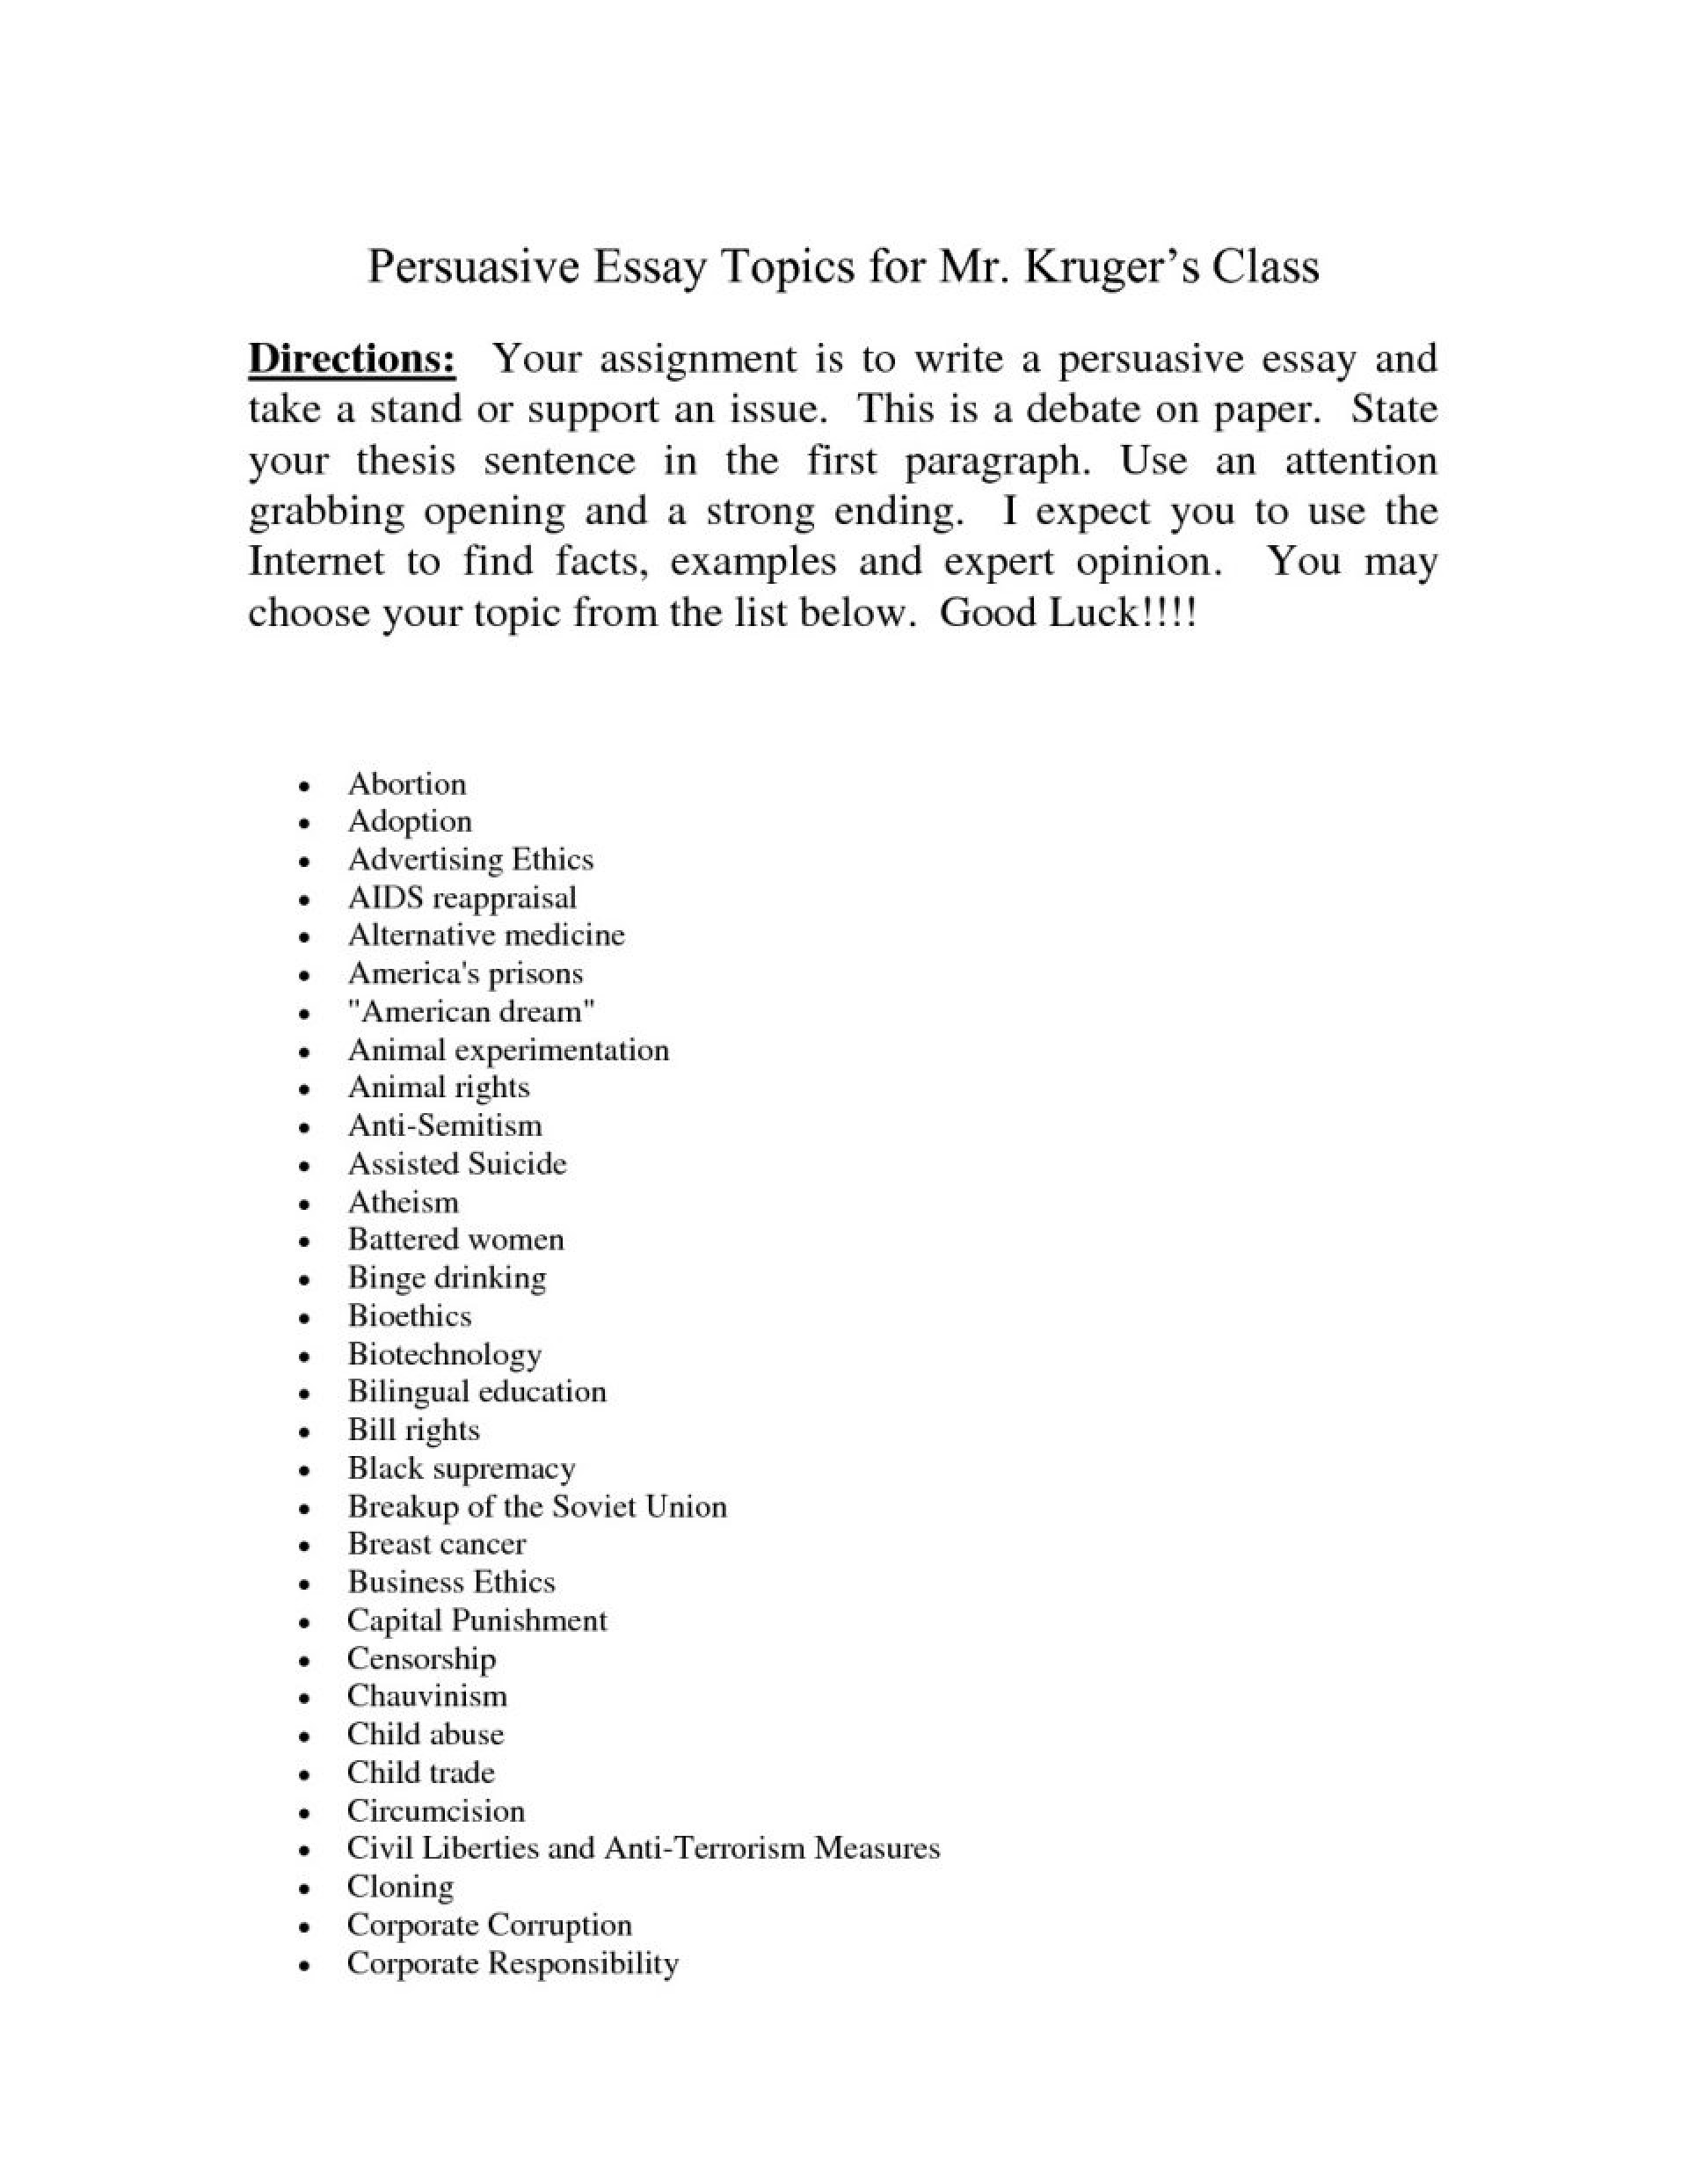 014 Research Paper Topic For Essay Barca Fontanacountryinn Within Good Persuasive Narrative Topics To Write Abo Easy About Personal Descriptive Informative Synthesis College 960x1242 Marvelous Business Papers Workplace Diversity Communication 1920